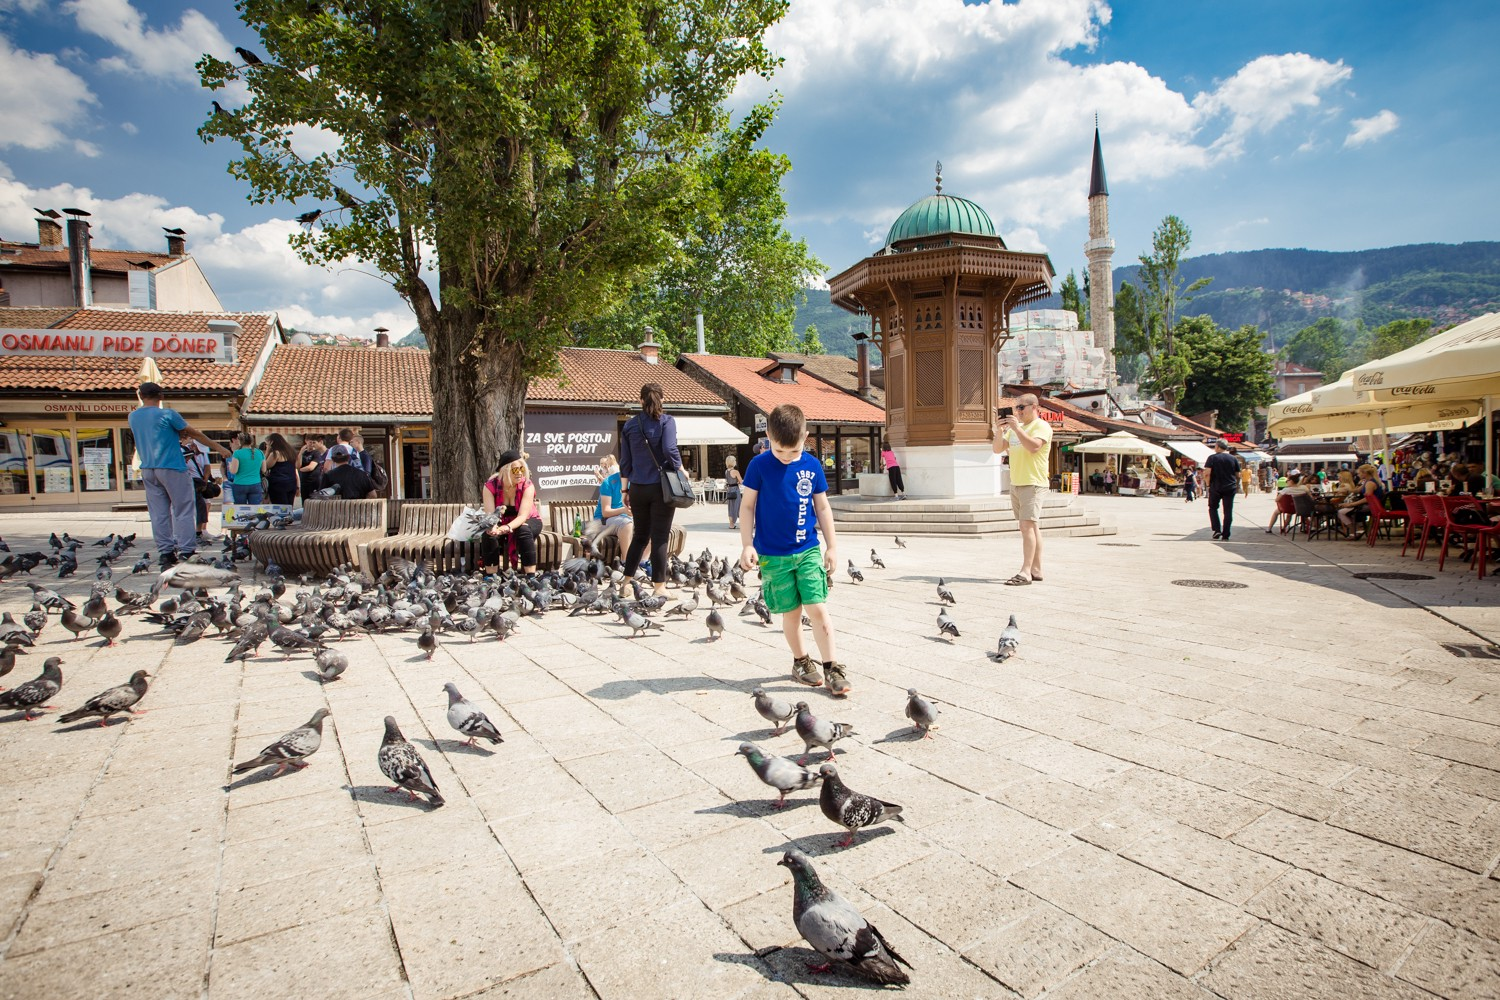 Boy and pigeons against the backdrop of Sebilj, Baščaršija, Sarajevo